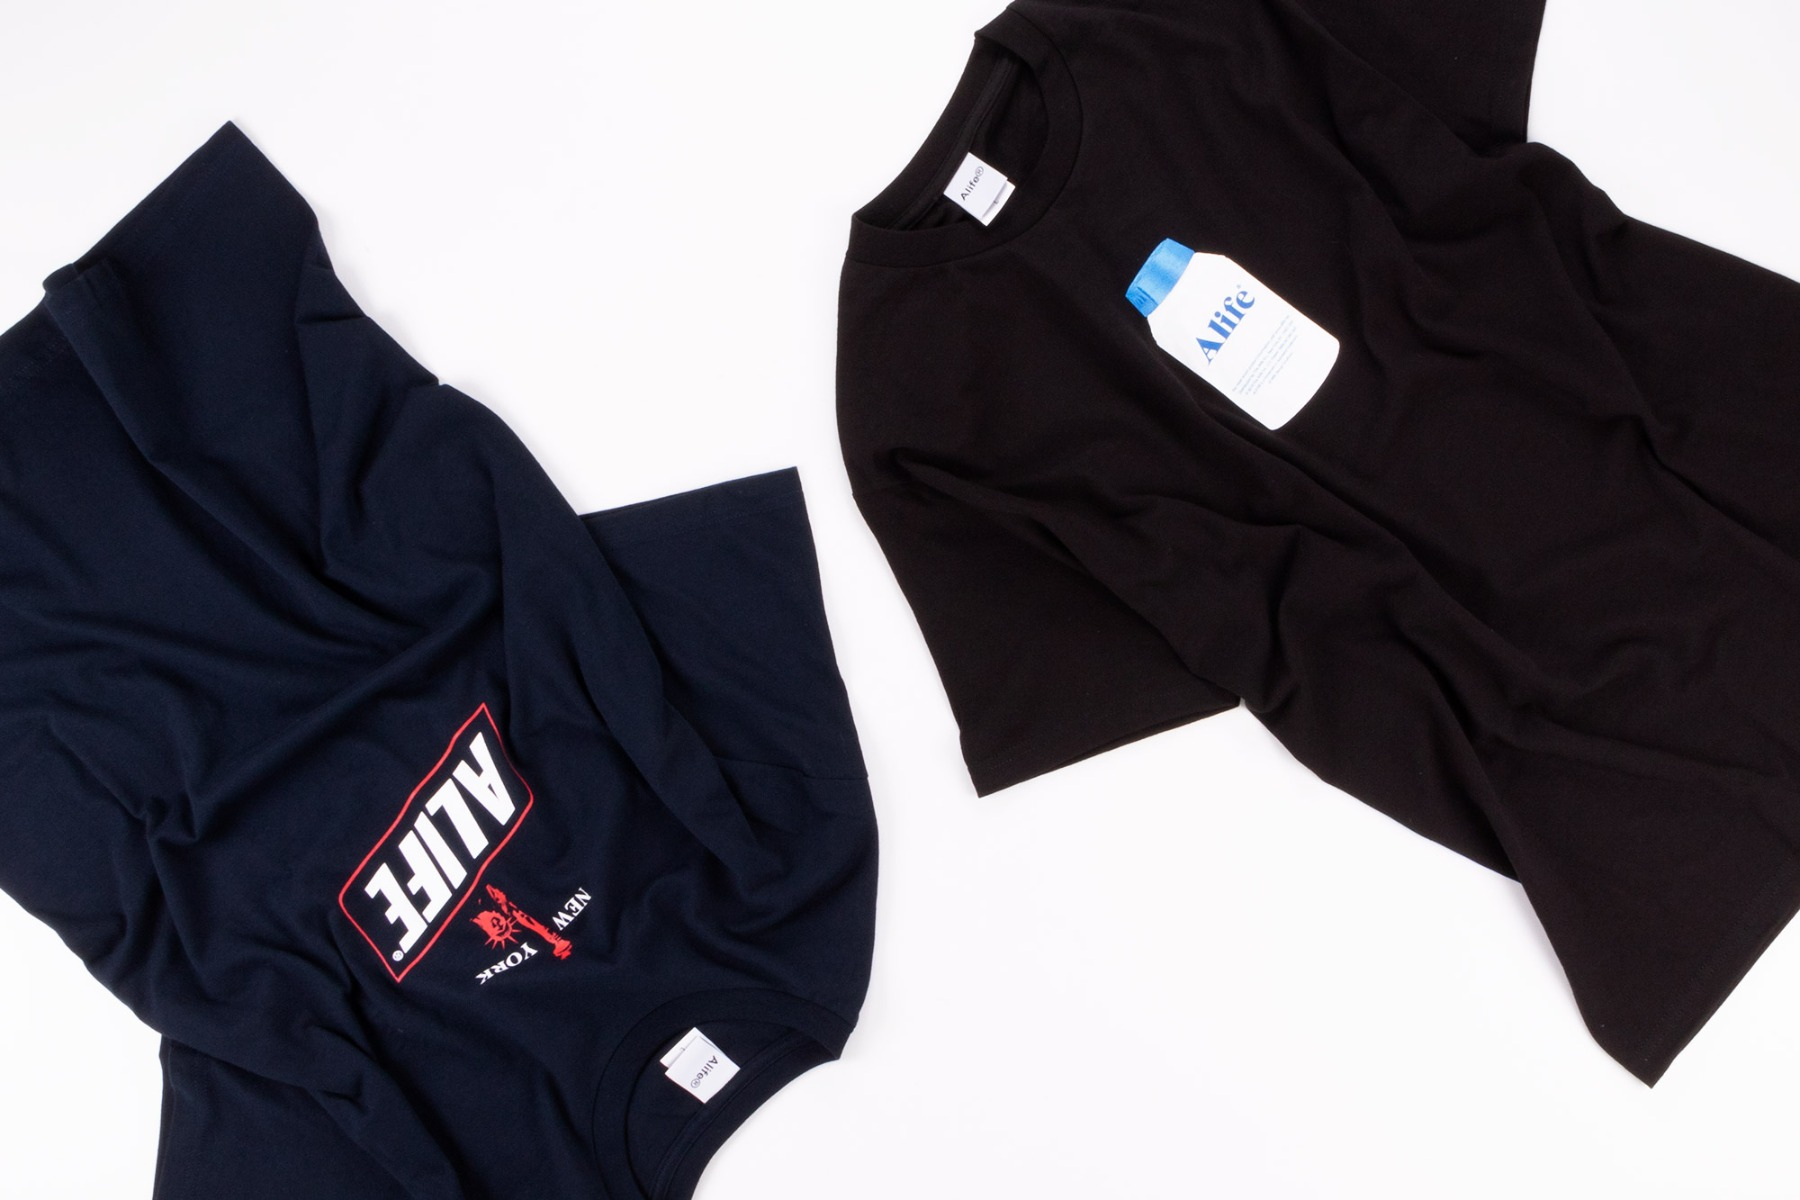 alife painkiller and alife NY hunger t-shirts at wellgosh